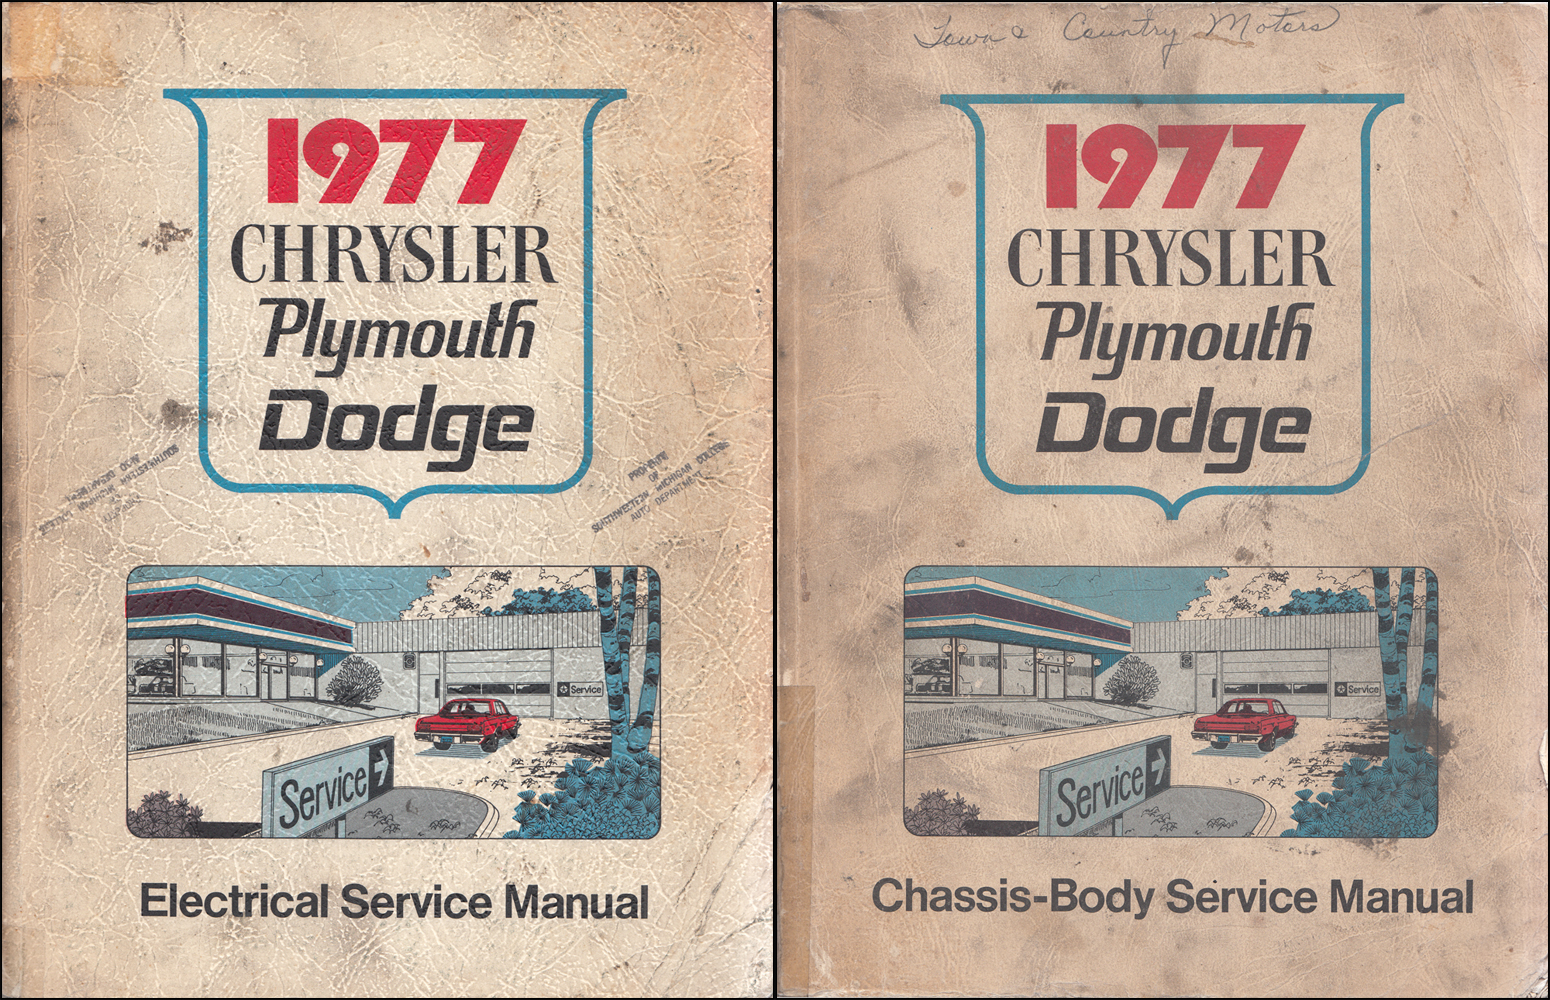 1977 MoPar RWD Car Repair Shop Manual 2 Vol Set